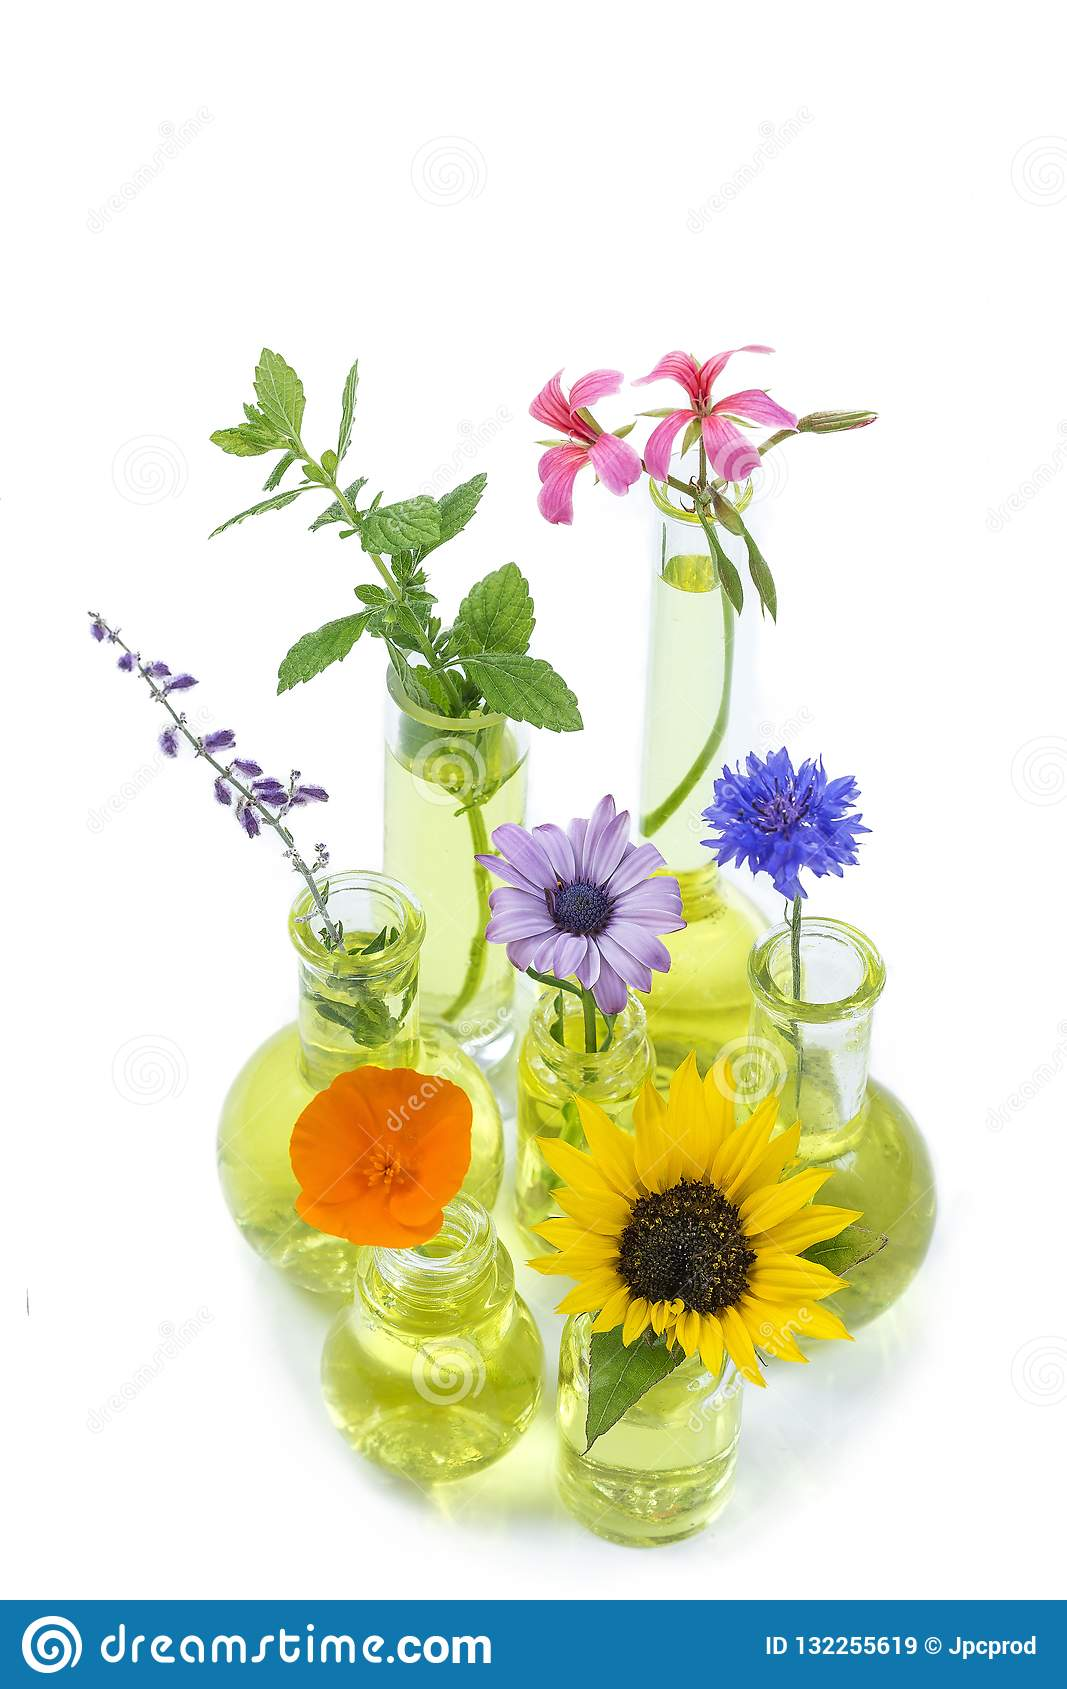 Plants In Test Tube And Flask With Medicinal Flowers In Against